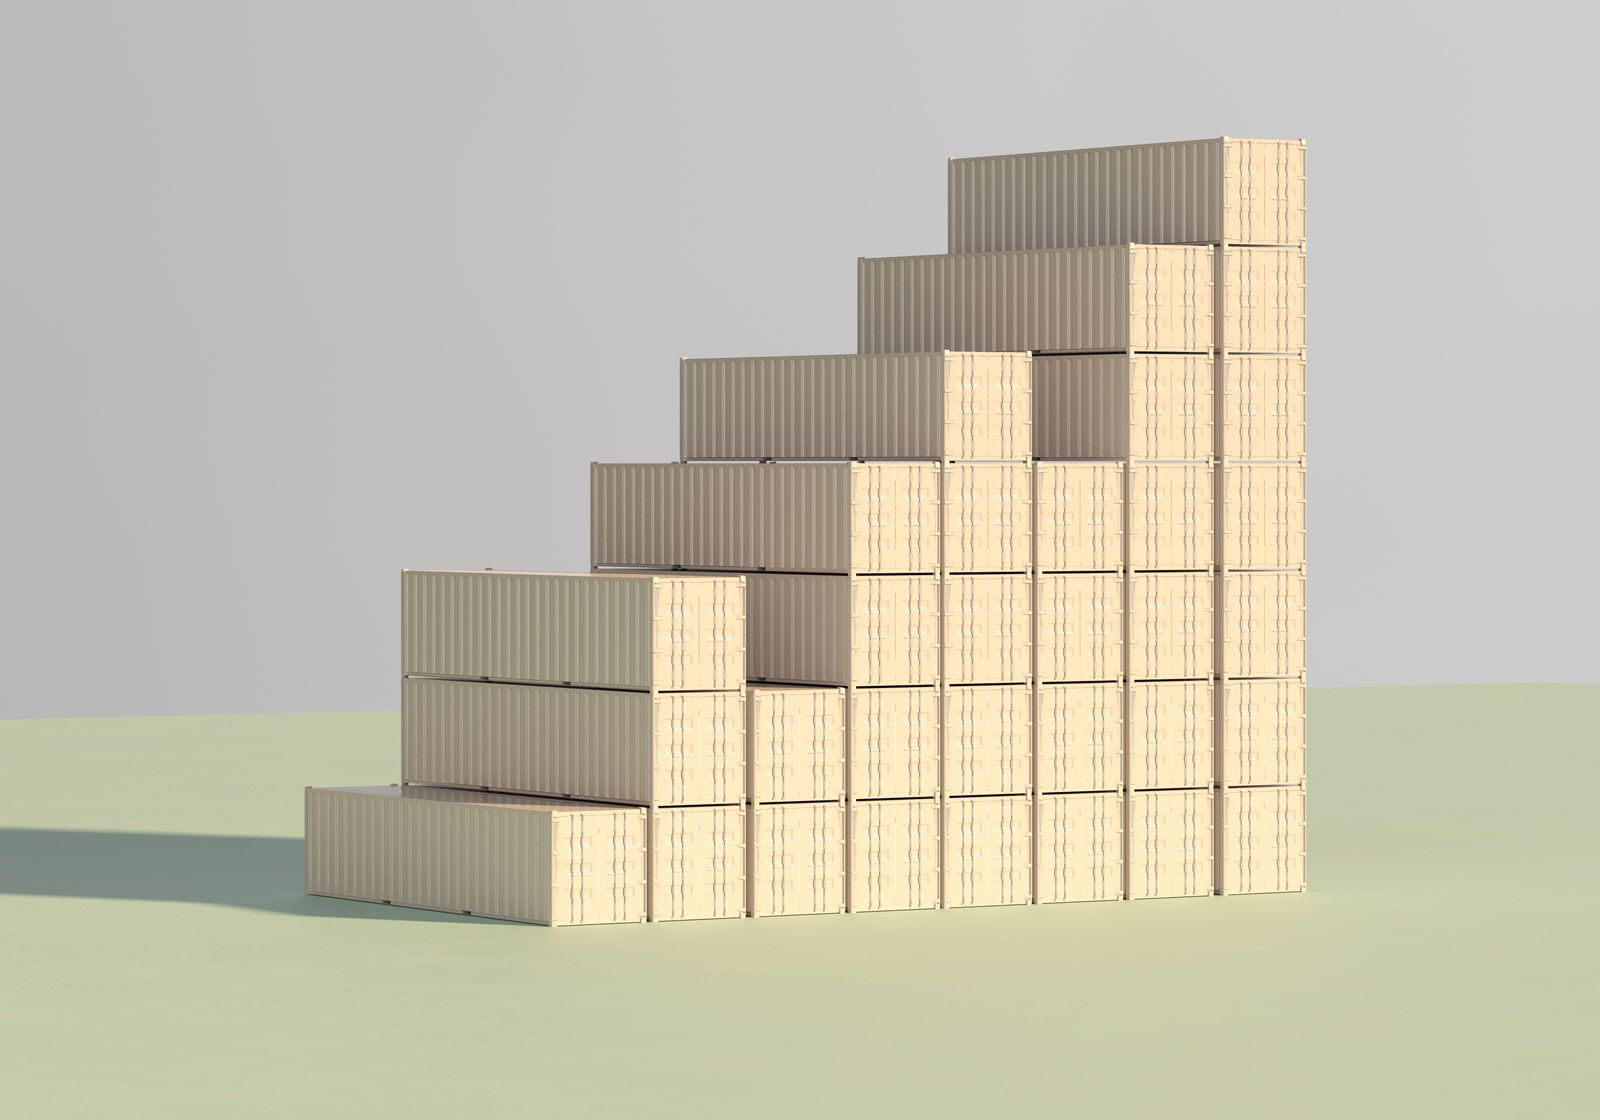 Rising bar graph made of containers